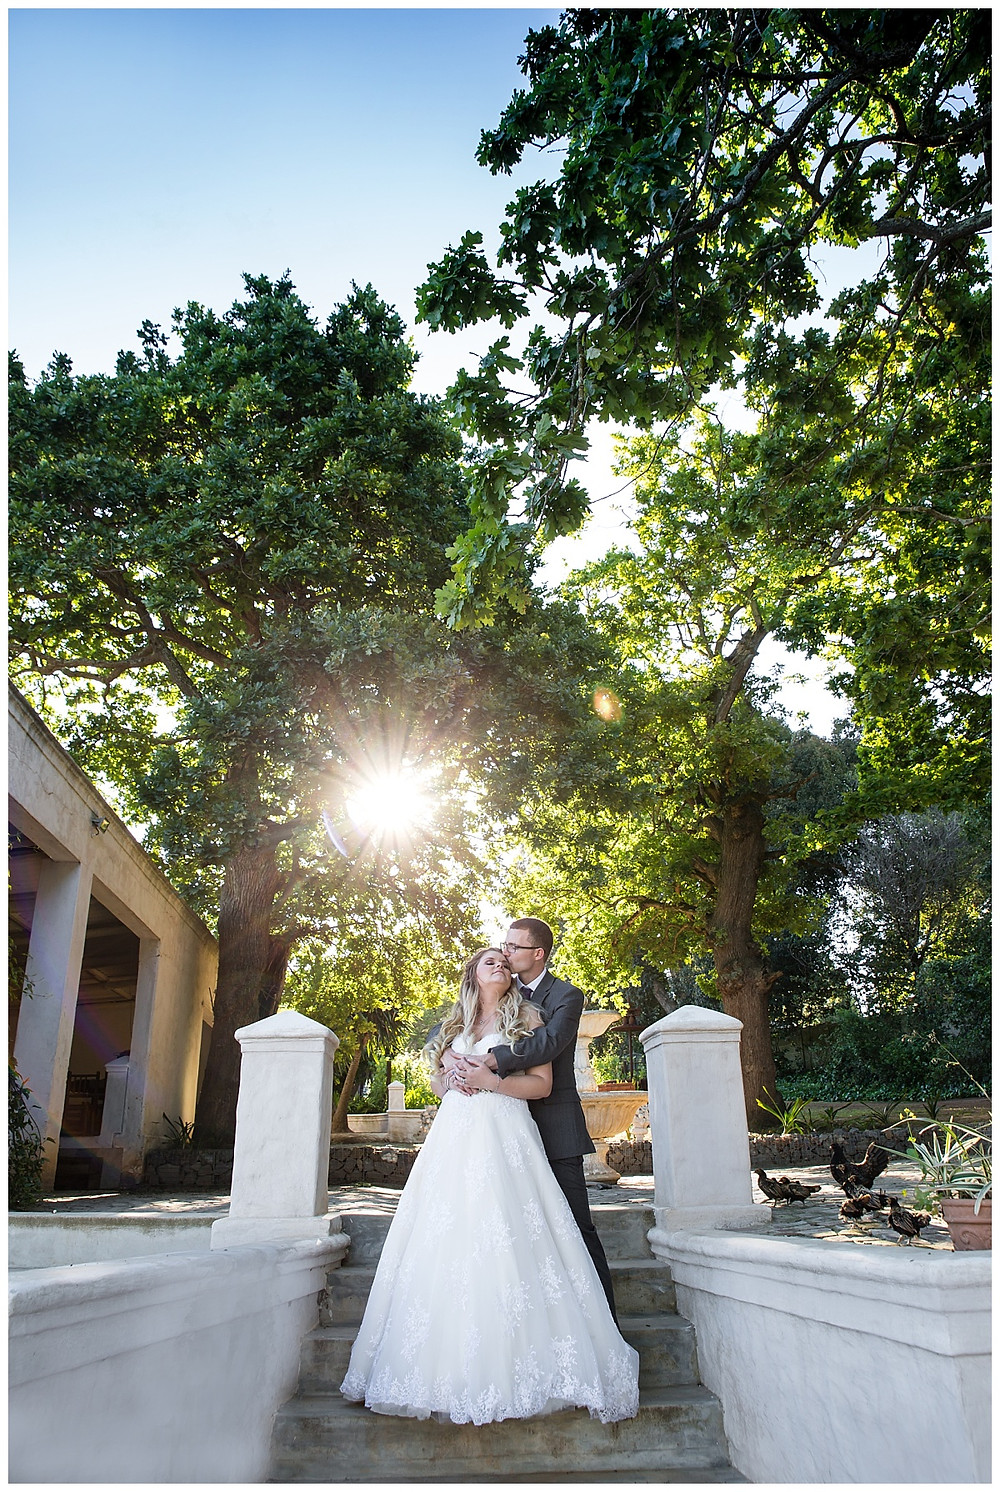 Wedding at Kolping, Cape Town by wedding photographer Jaqui Franco